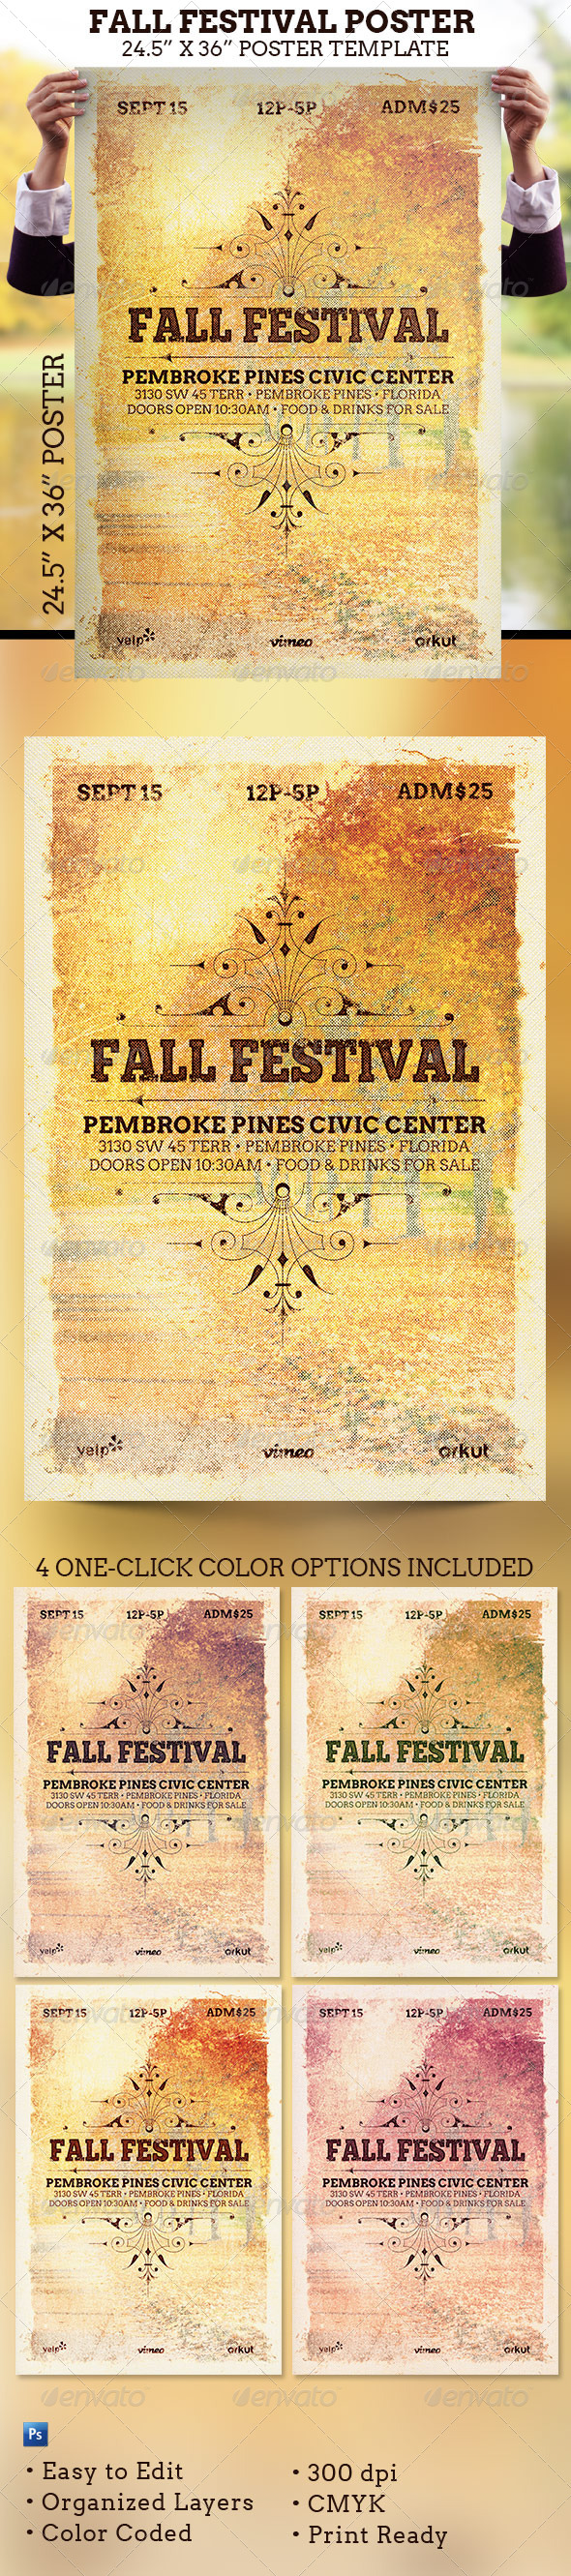 GraphicRiver Fall Festival Poster Template 5856223